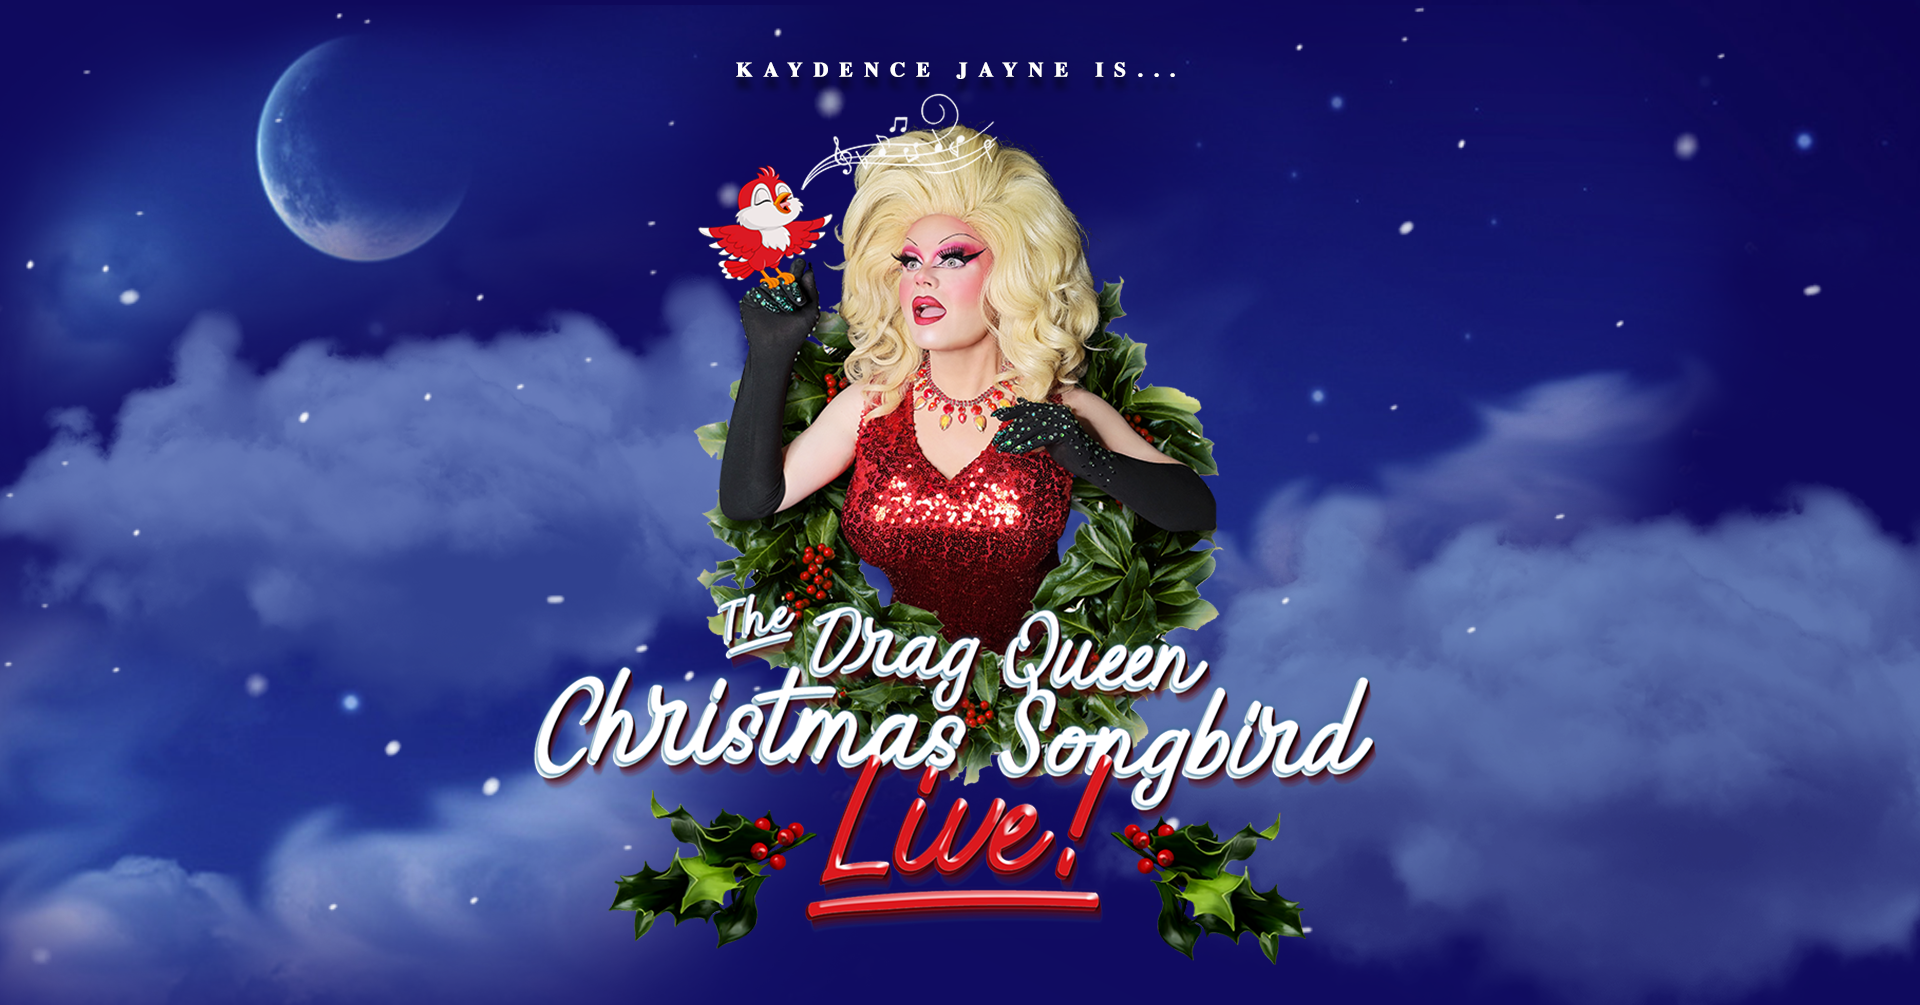 Drag Queen Christmas Tour 2020 The Drag Queen Christmas Songbird!   18 DEC 2020